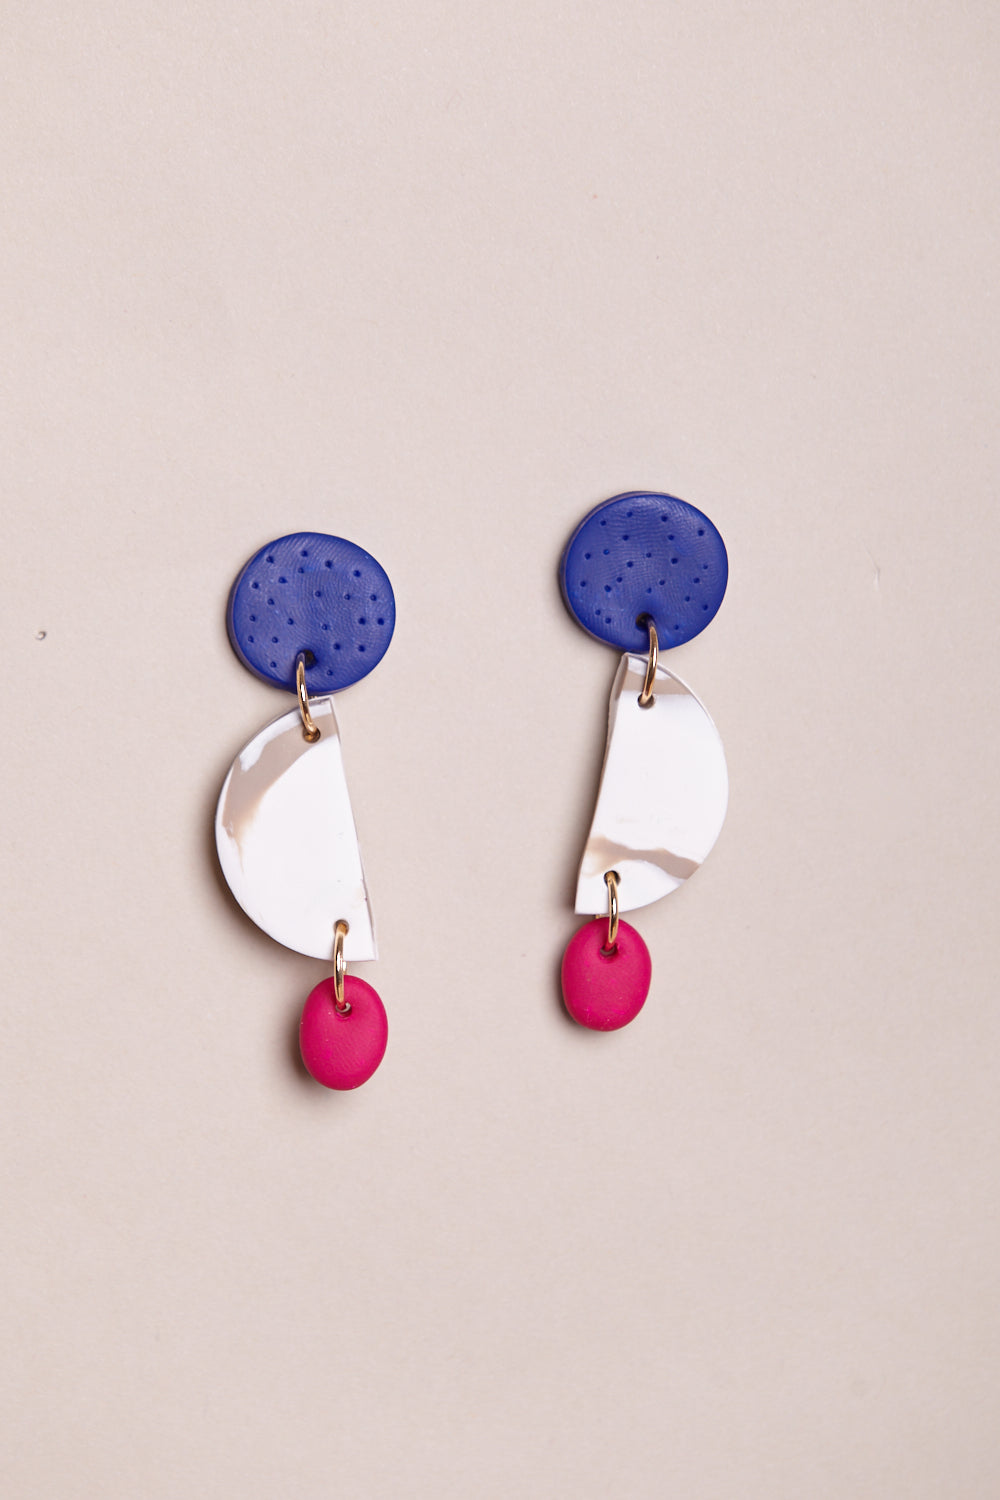 Jo Earrings in Royal Fuchsia